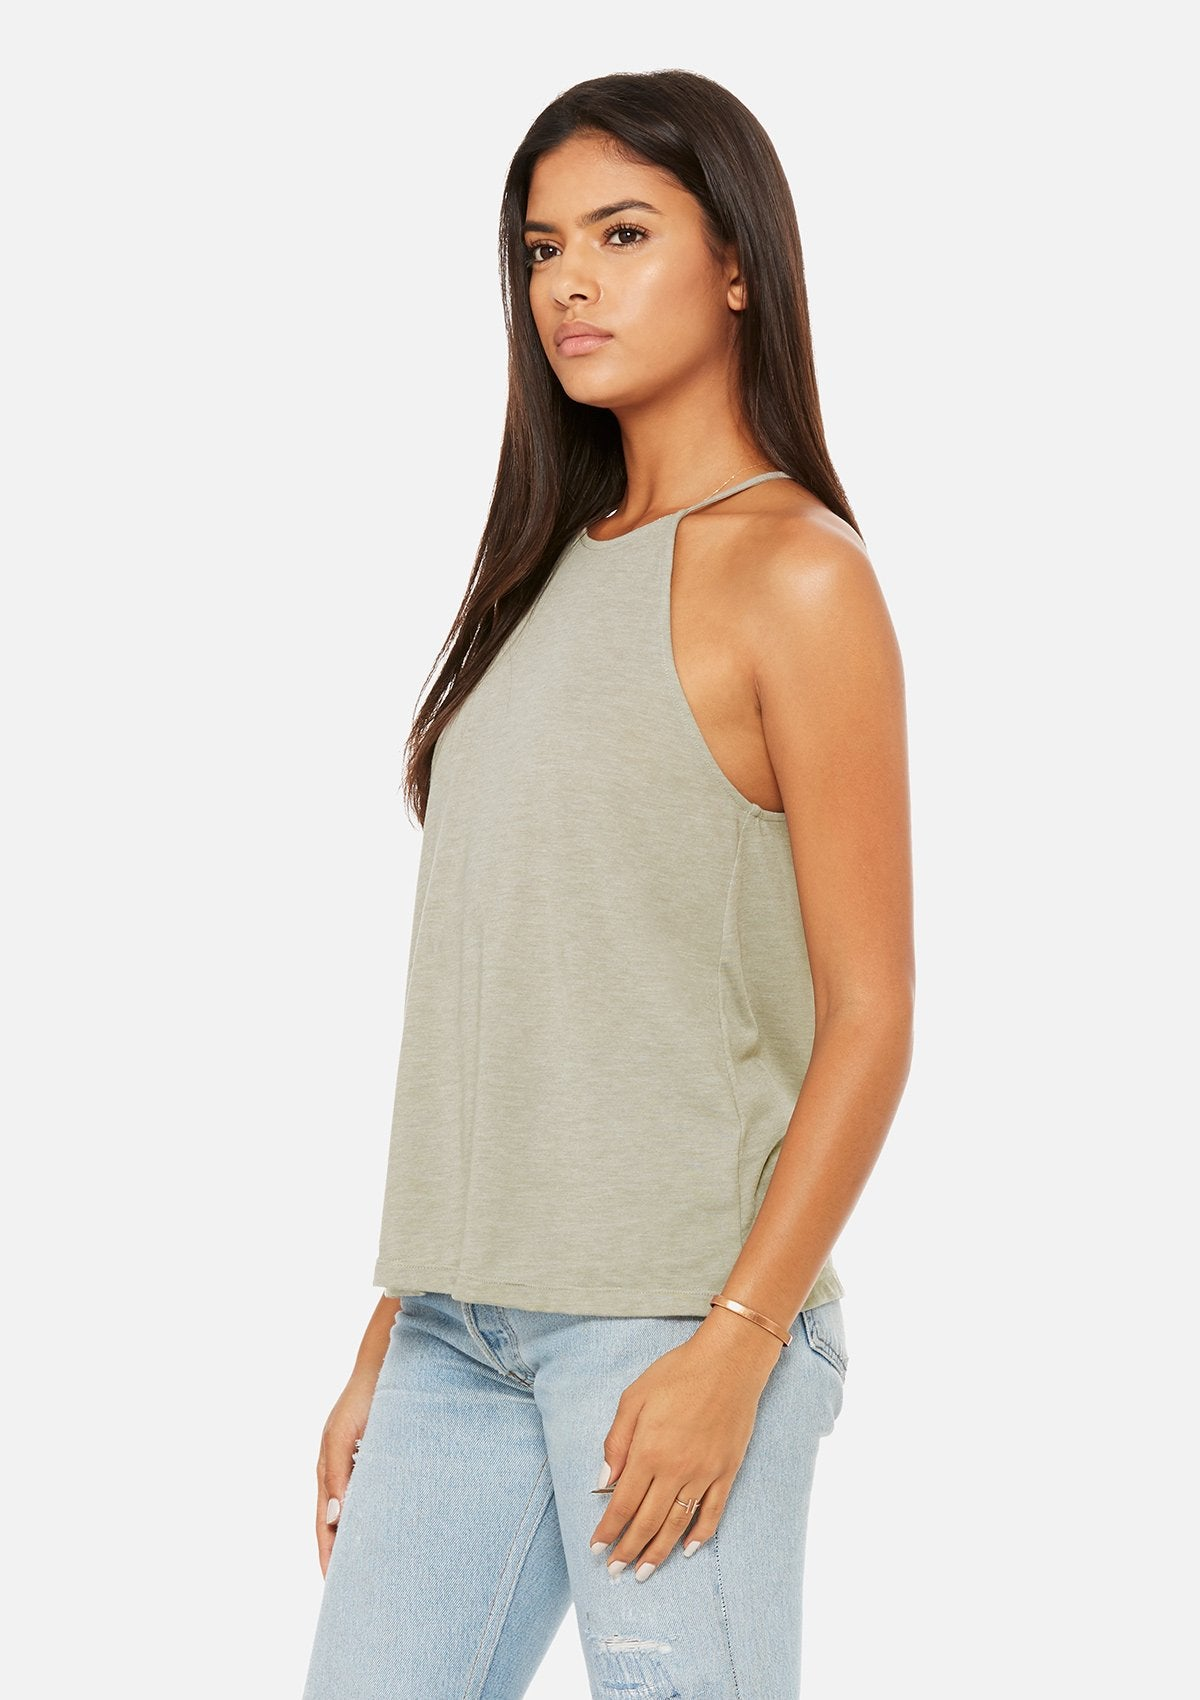 The High Neck Tank